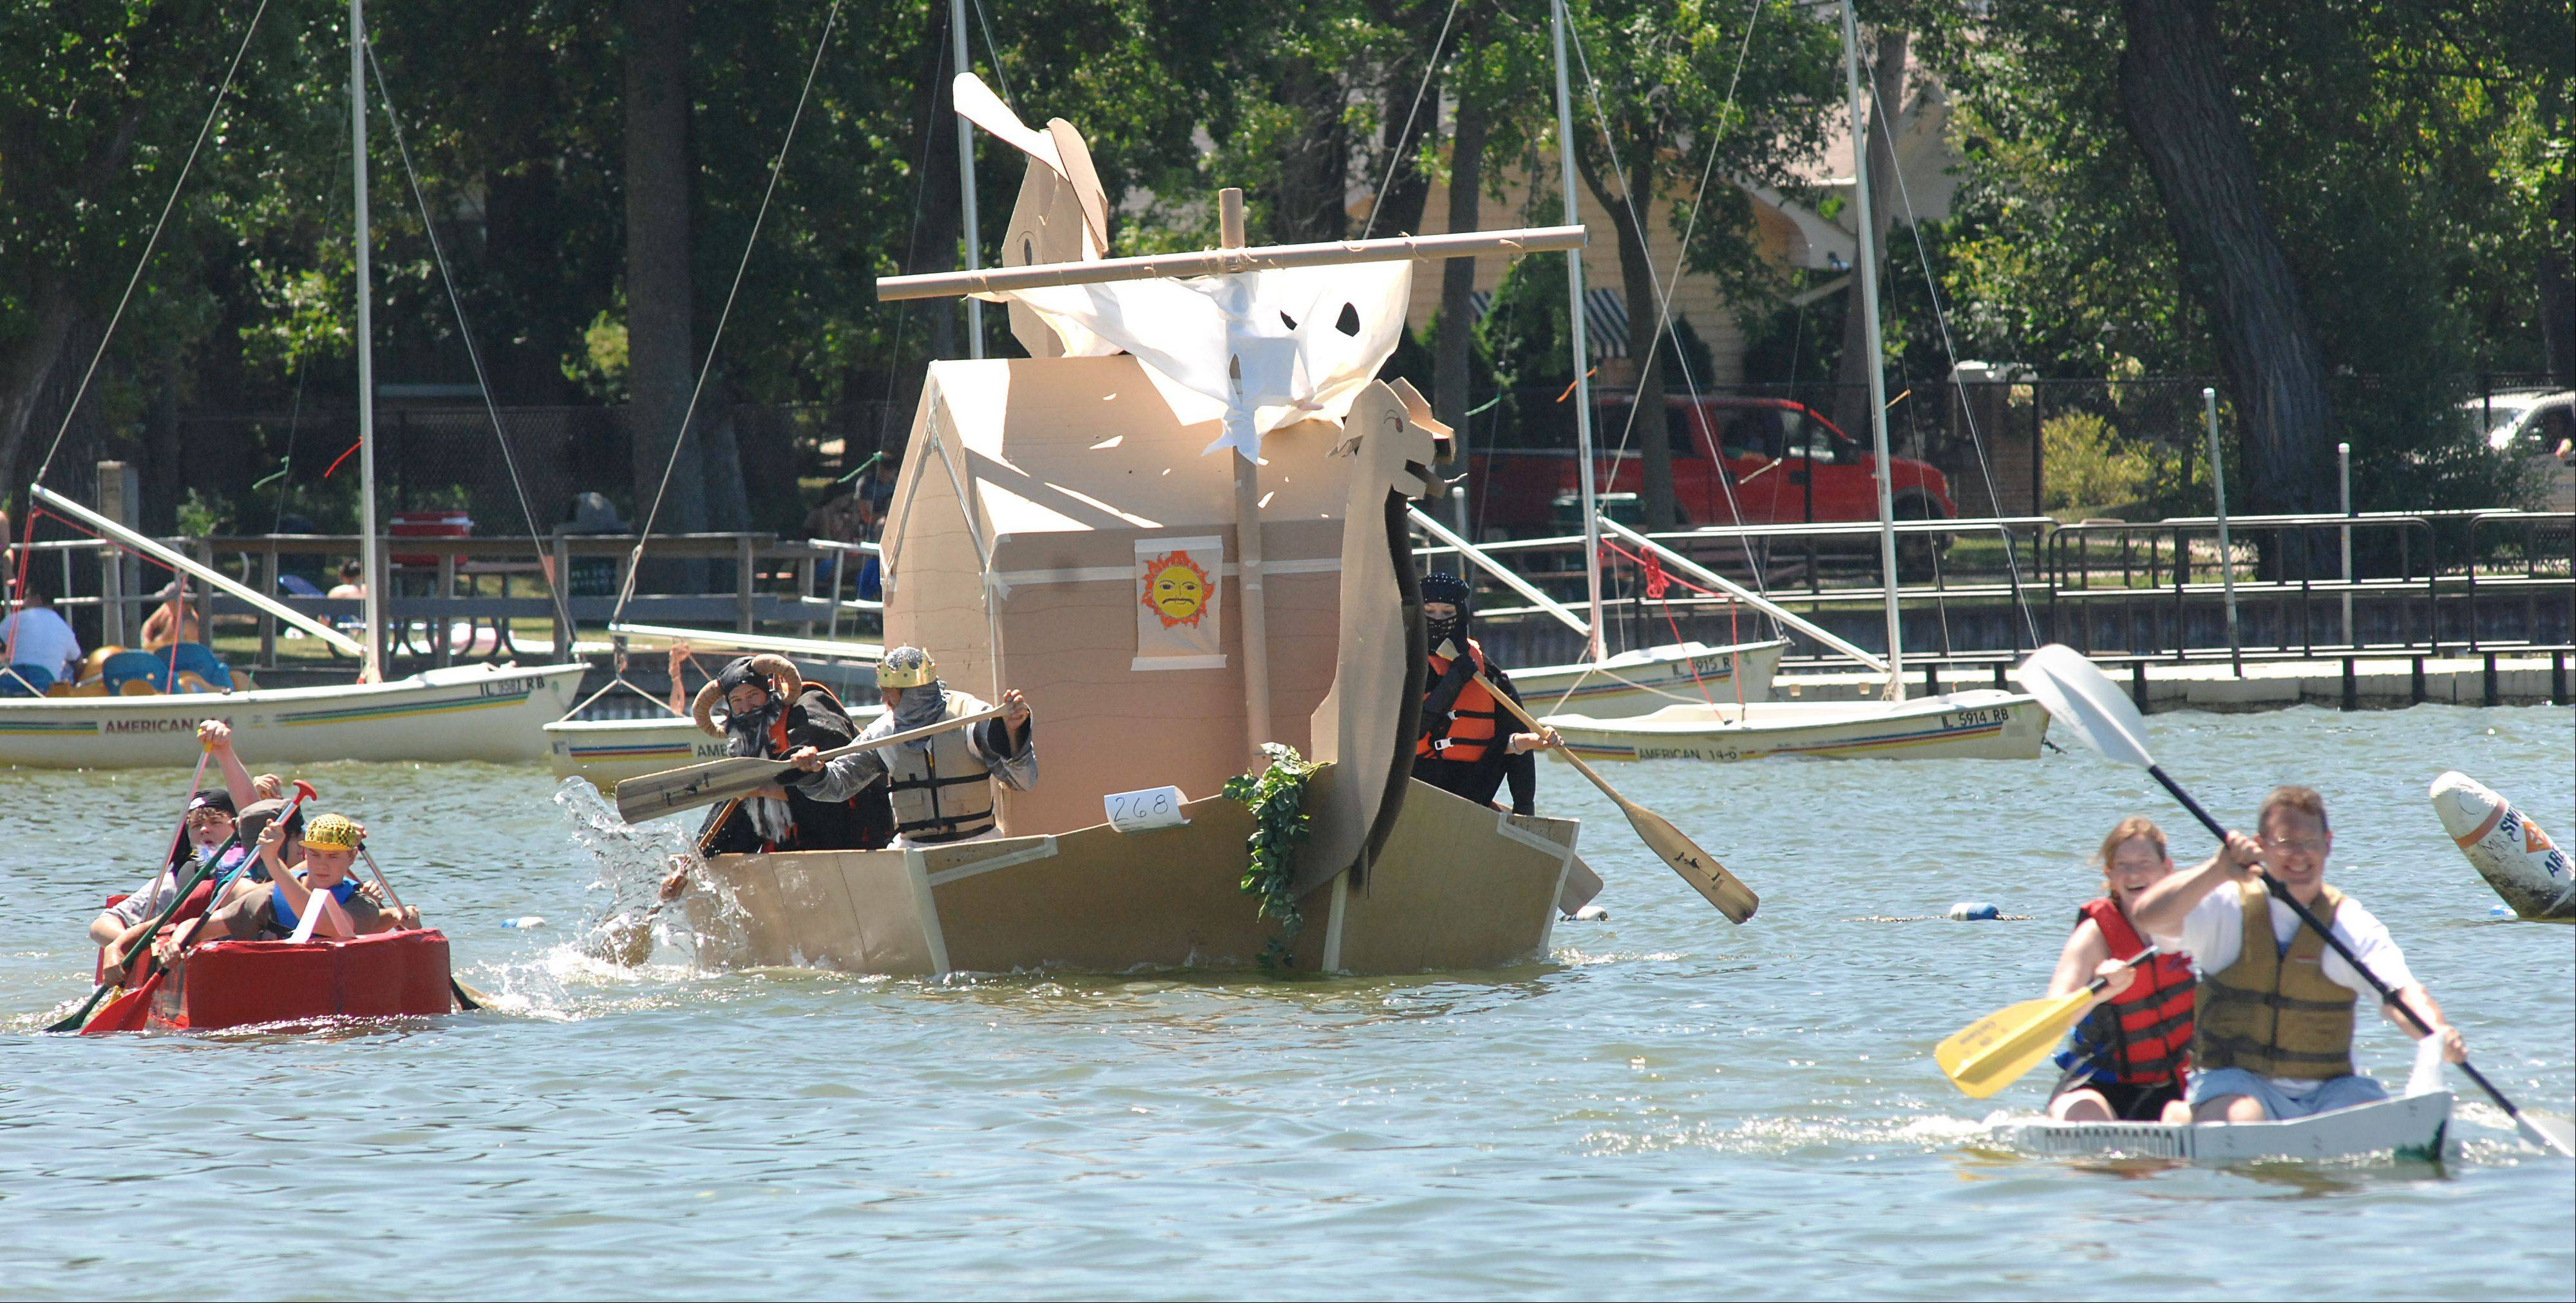 Start building your own cardboard boat for the 29th annual America's Cardboard Cup Regatta, which will be Saturday, June 22,